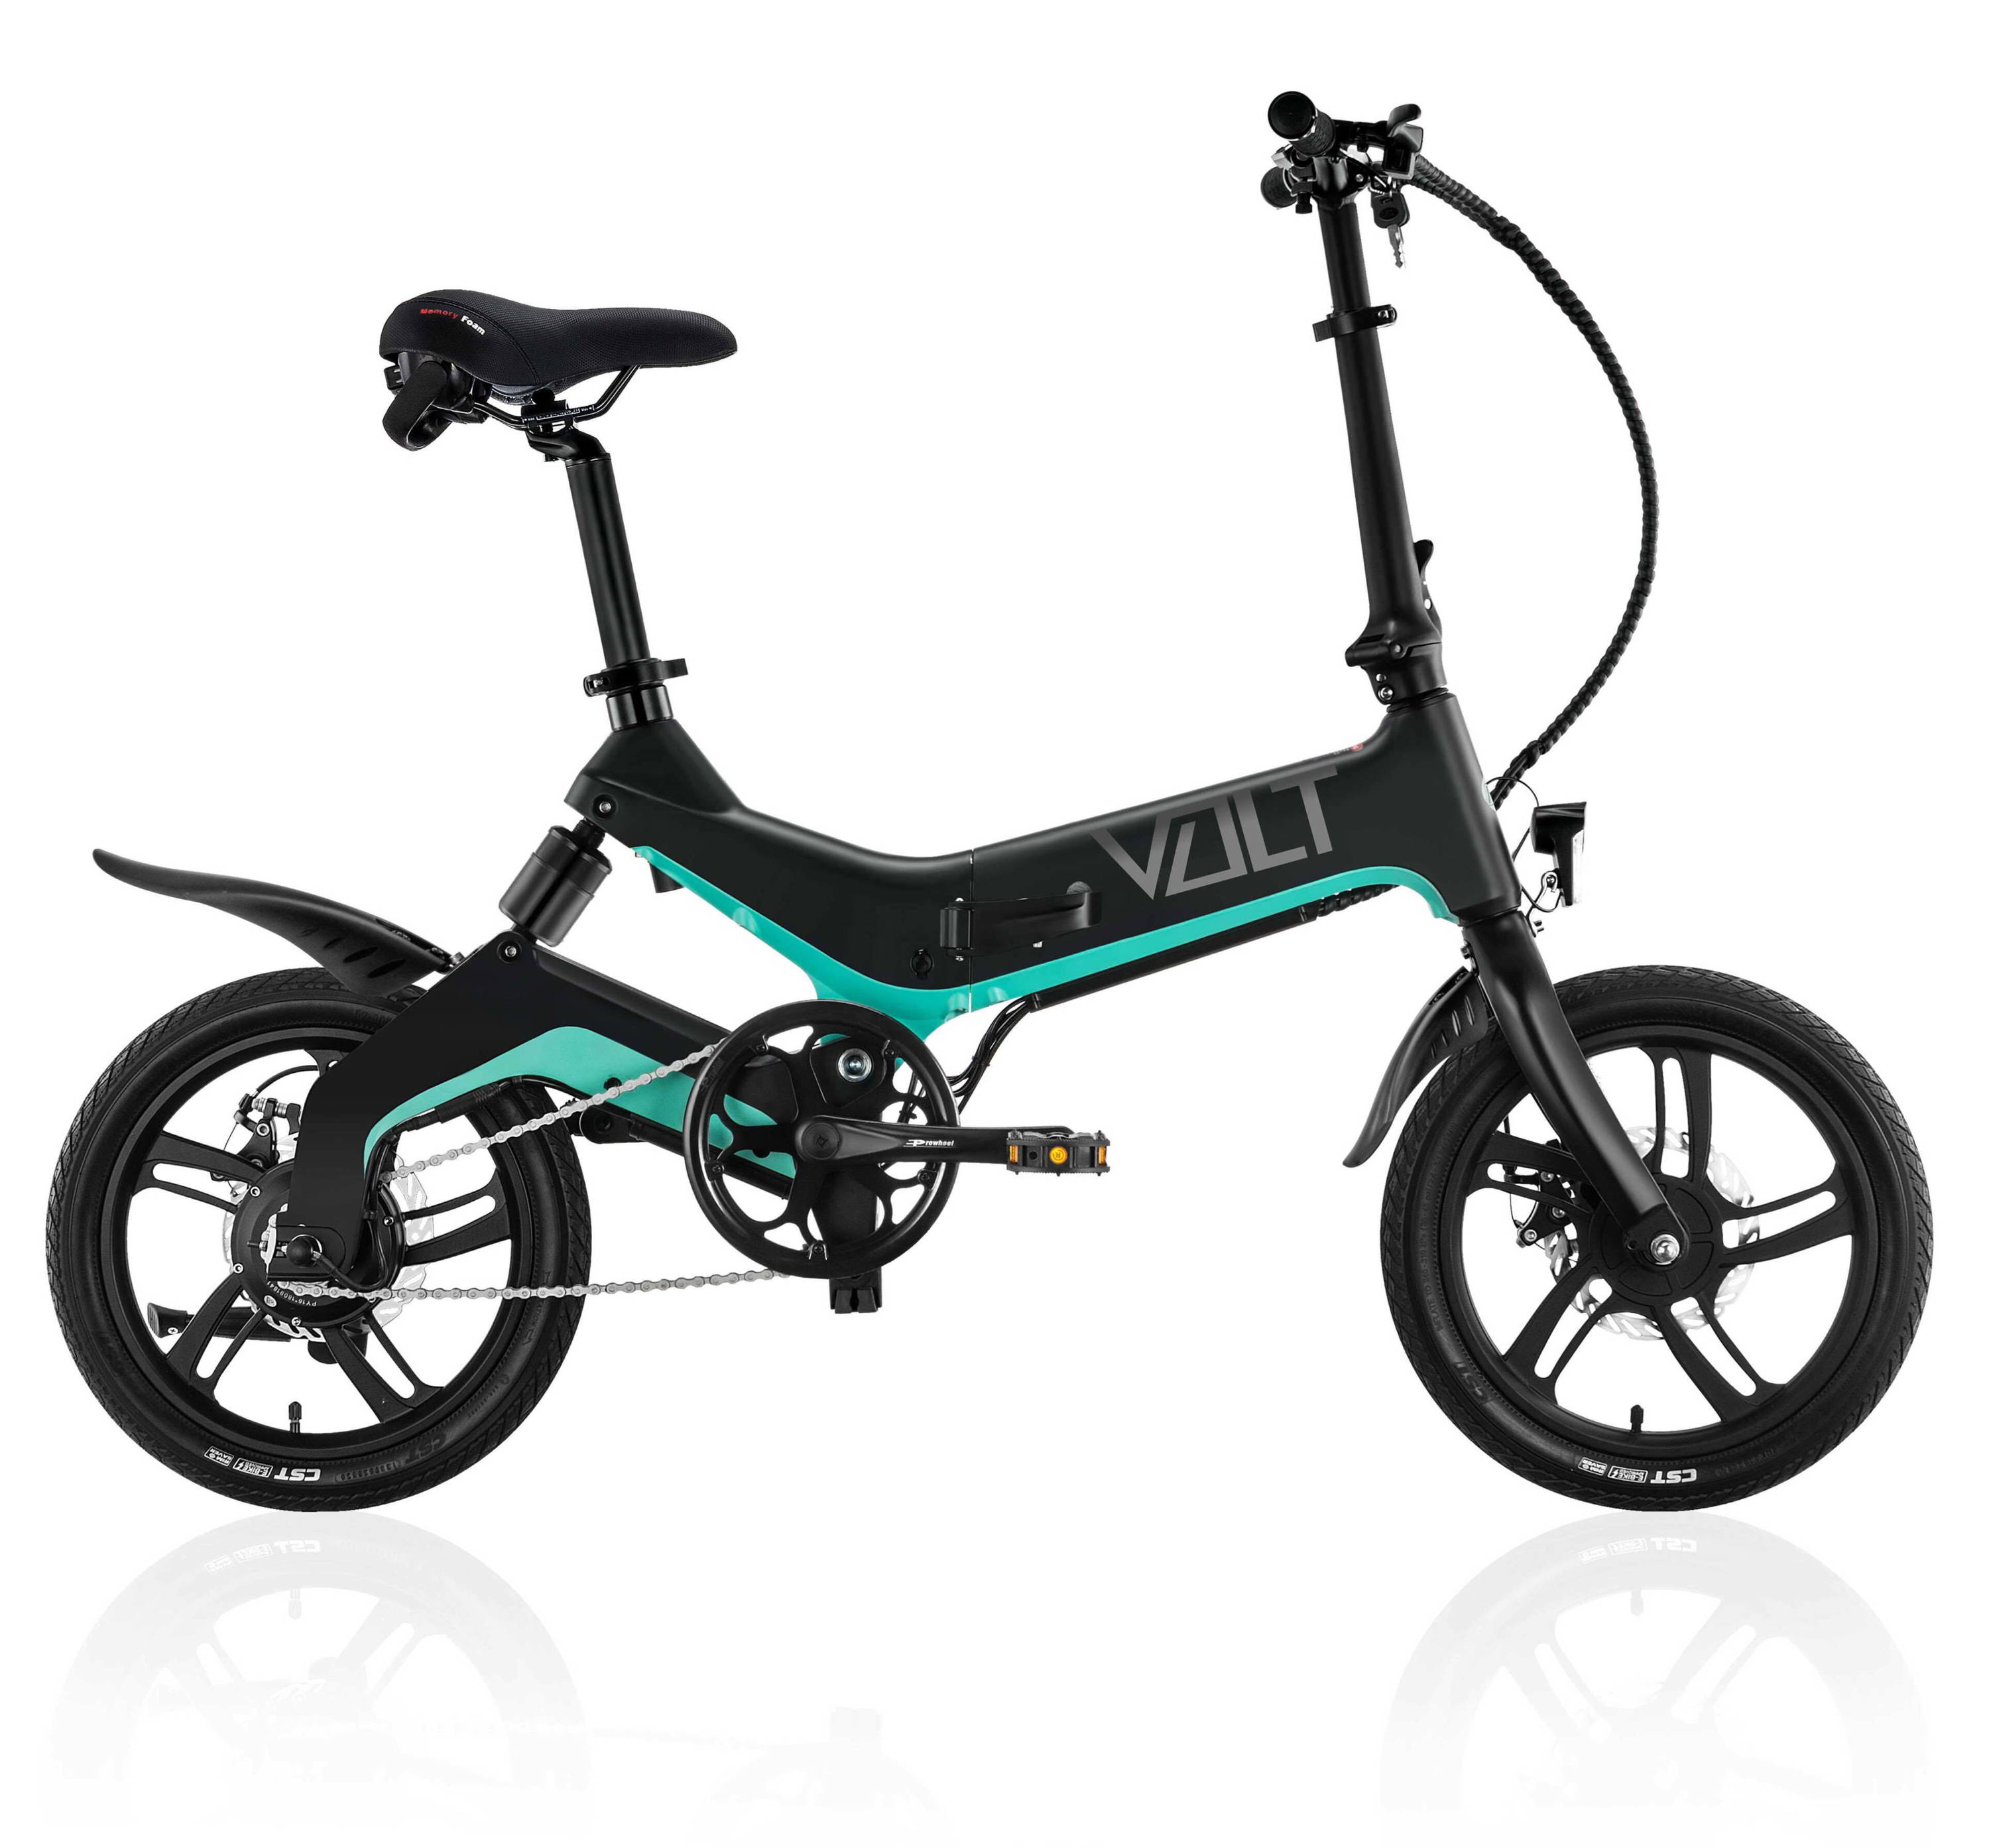 VOLT Mate electric bike in Jet Black colour against white background. 16 inch wheels, pedal assist, dual disc brakes. VOLT city bike by VOLT e-bikes. Classified as one of the best electric bikes in Australia.